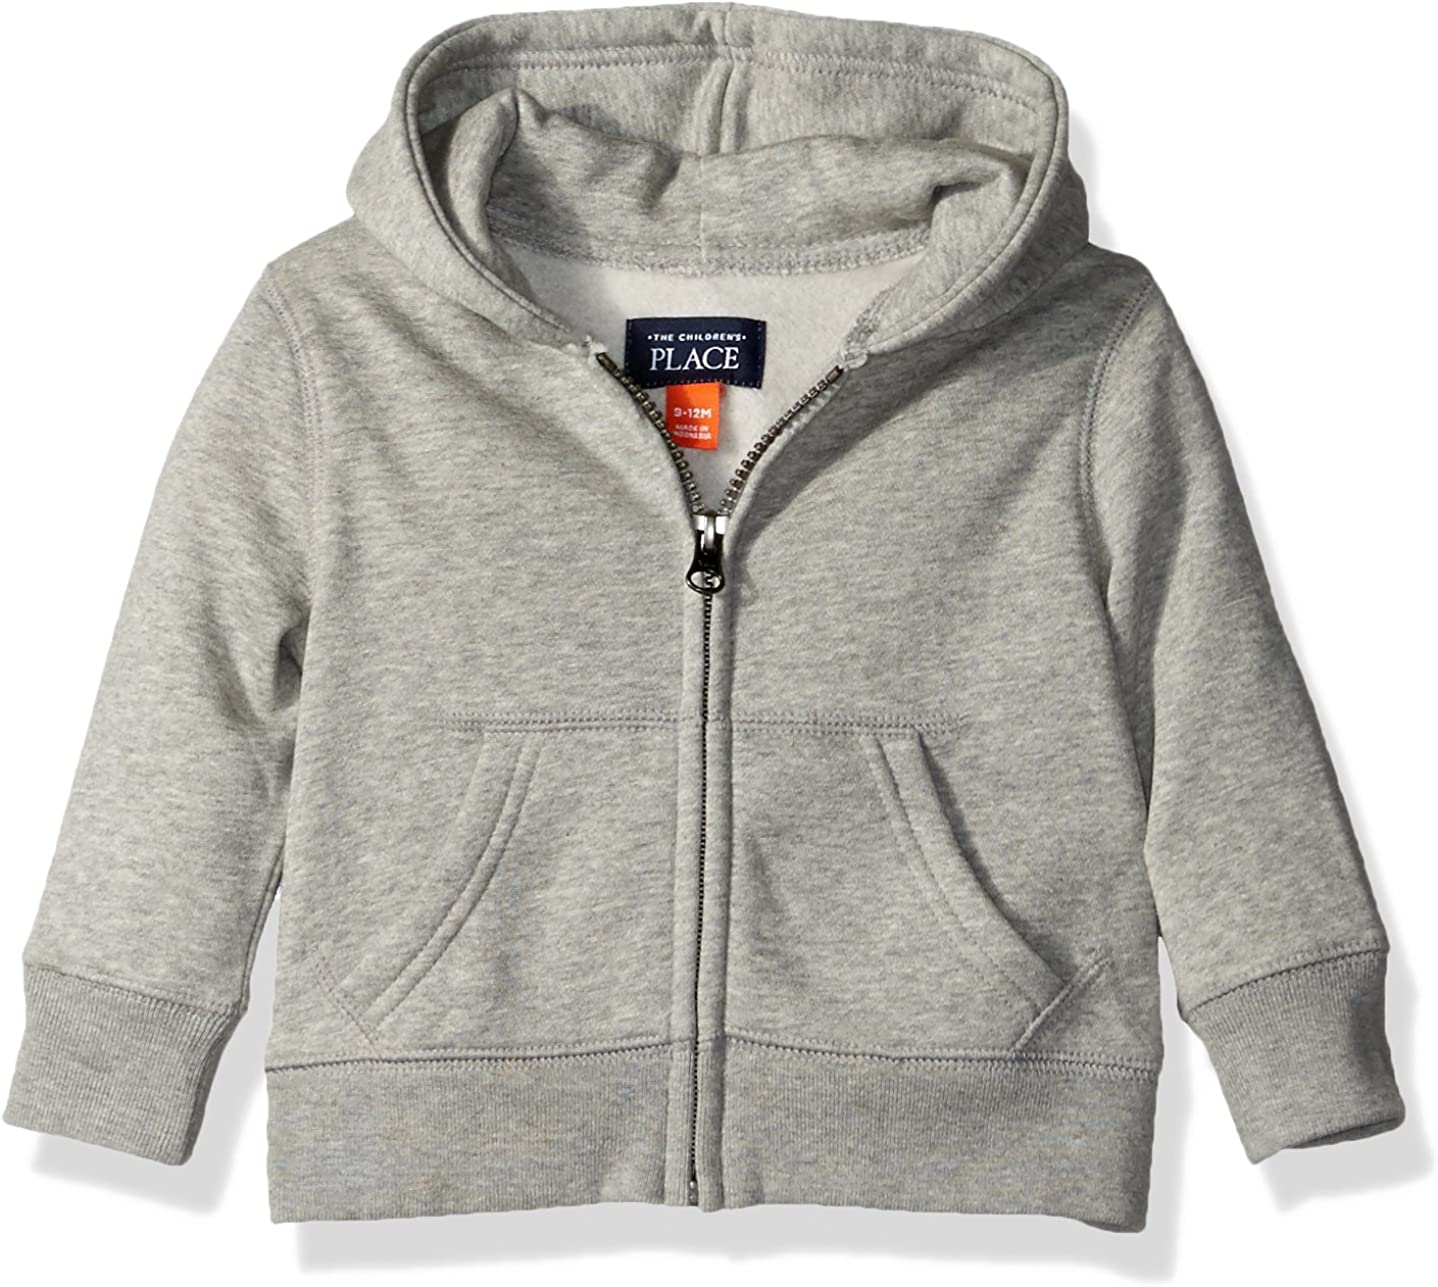 The Children's Place Baby Boys' Gym Uniform Hoodie, Smokey, 12-18 Months: Clothing